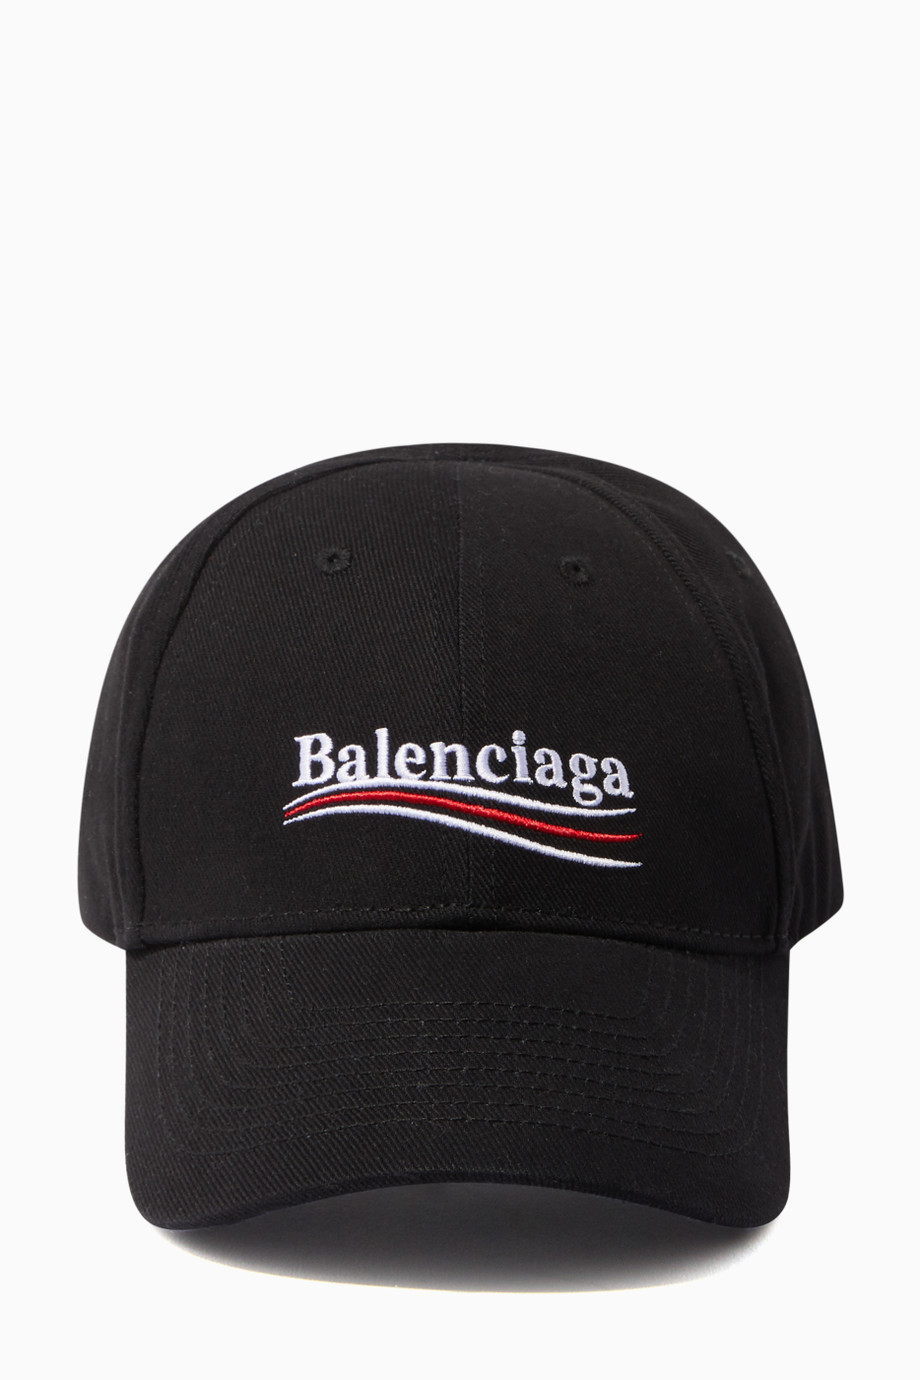 Shop Balenciaga Black Political Logo Baseball Cap for Men.